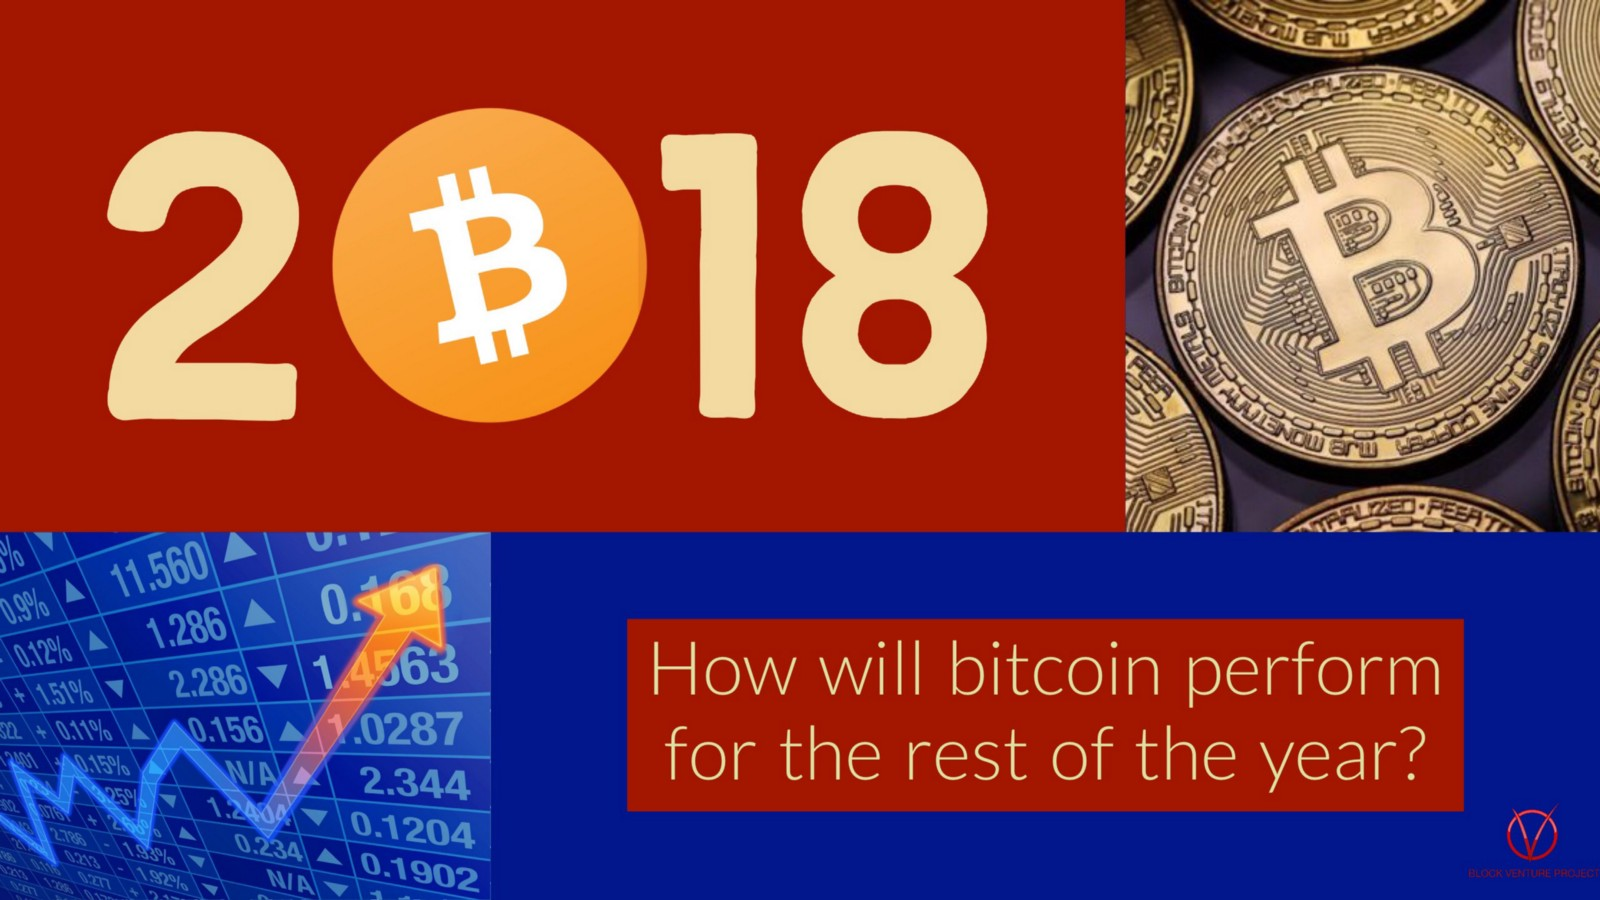 How will bitcoin perform for the rest of the year the crypto how will bitcoin perform for the rest of the year ccuart Image collections